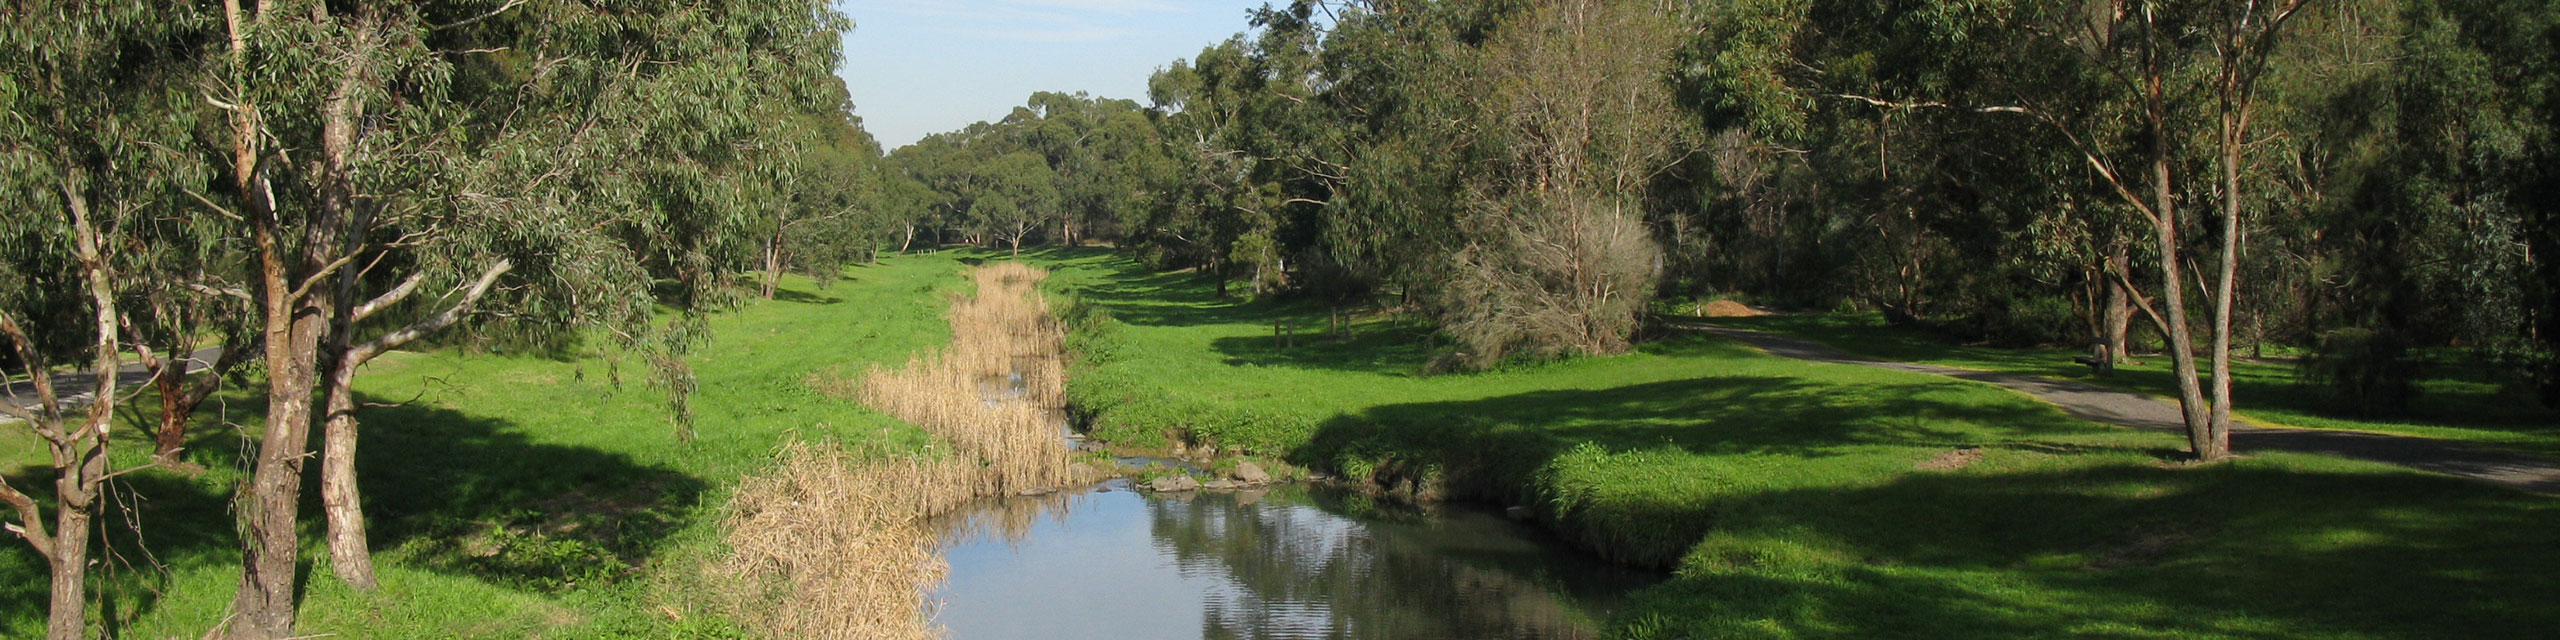 Dandenong Creek